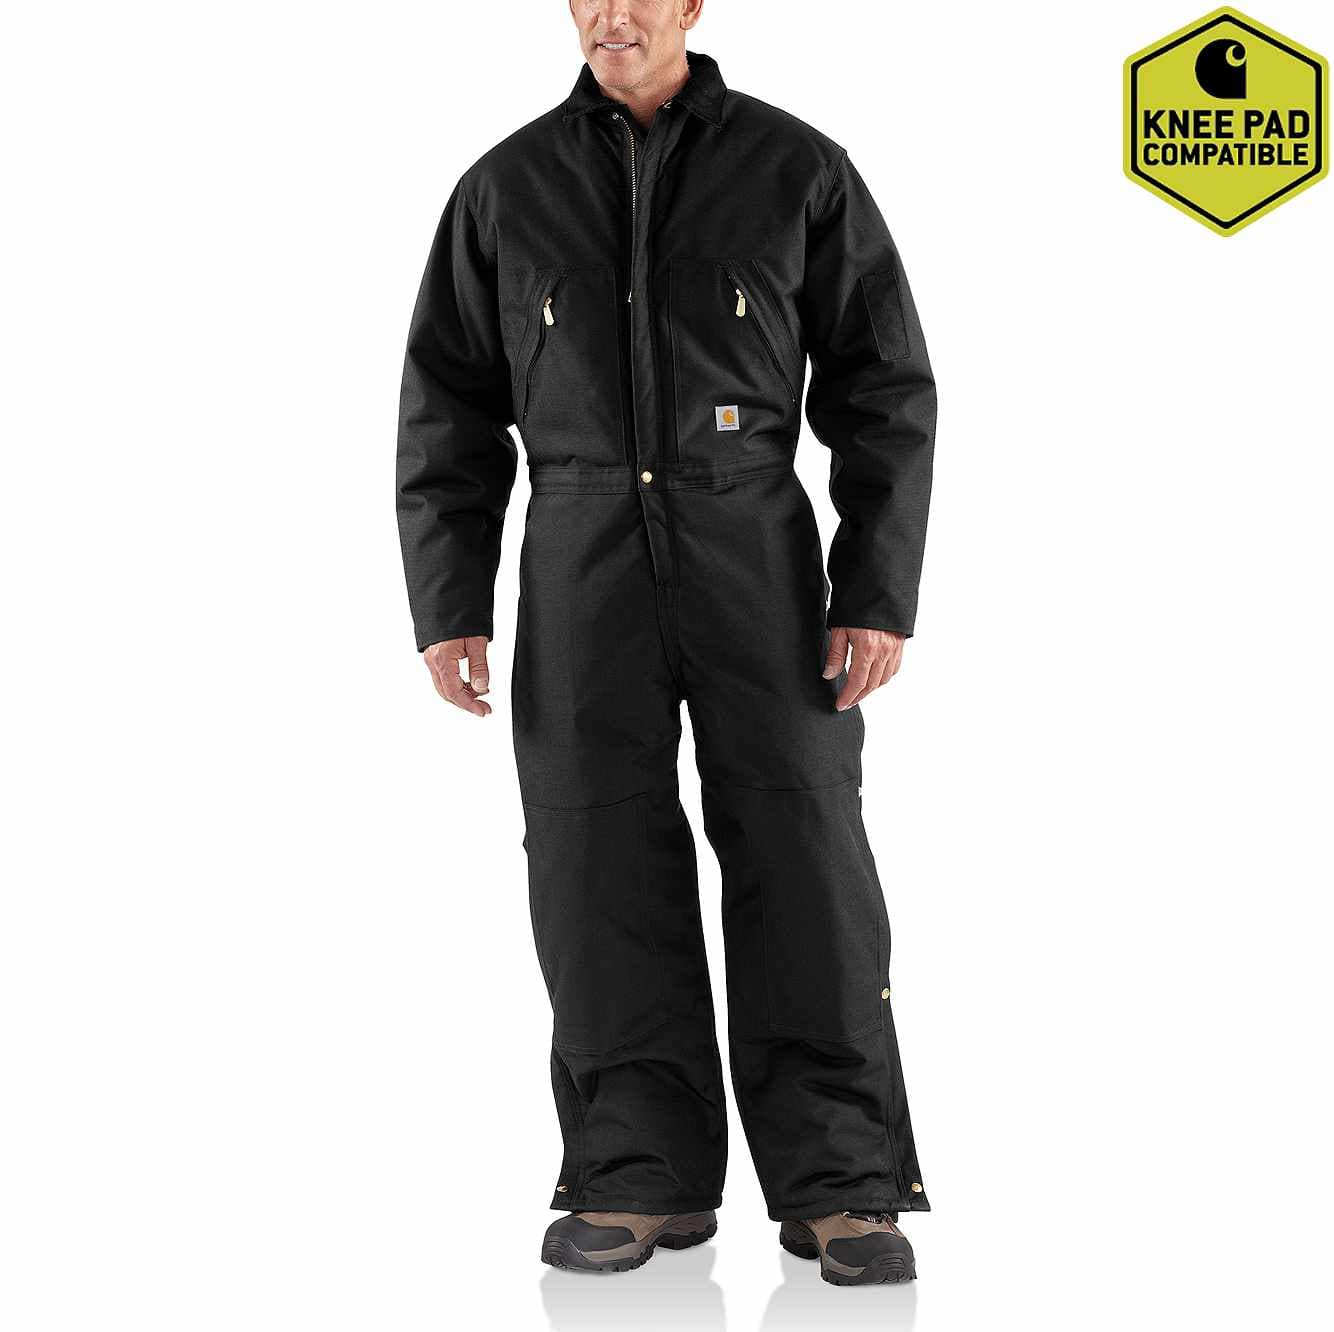 shop for original best quality for get cheap Yukon Extremes® Coverall / Arctic Quilt-Lined